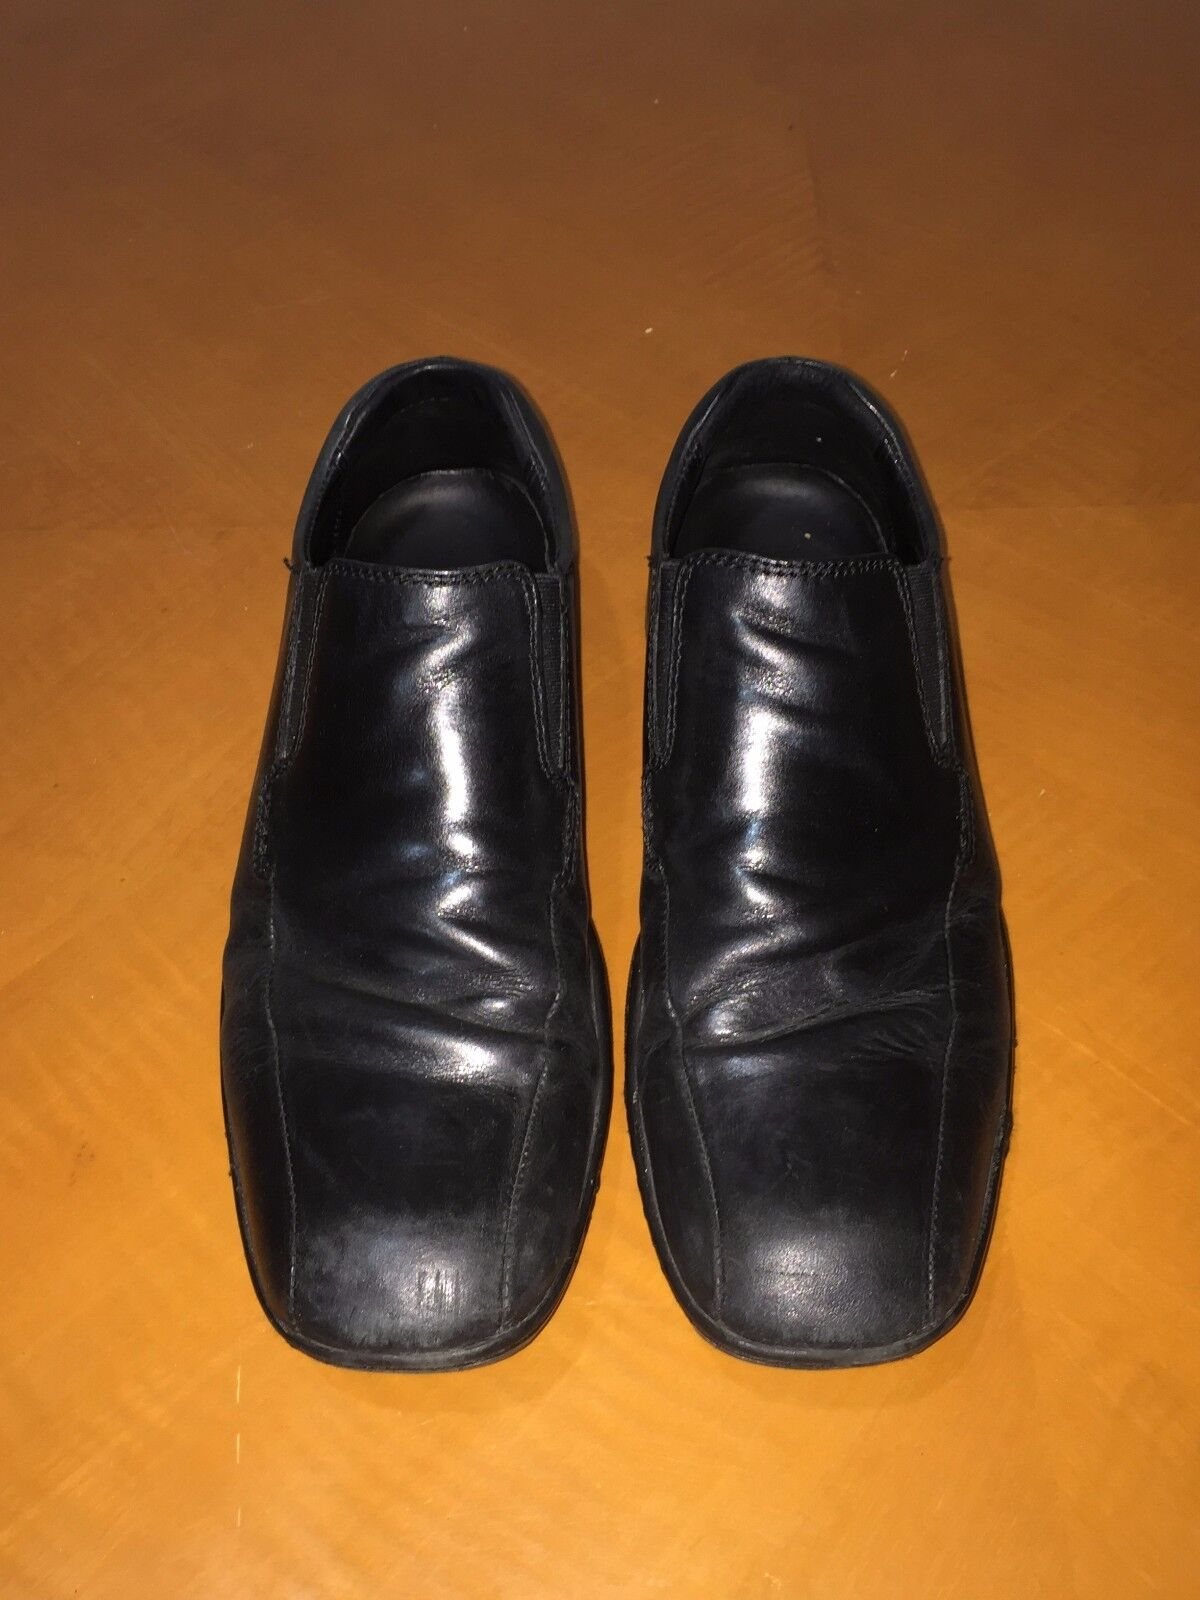 Man/Woman Mens Men's Kenneth Cole New Black York Come Fly Slip-on Black New Loafers Shoes Size 8 New varieties are launched a good reputation in the world fine HA305 9c44ab